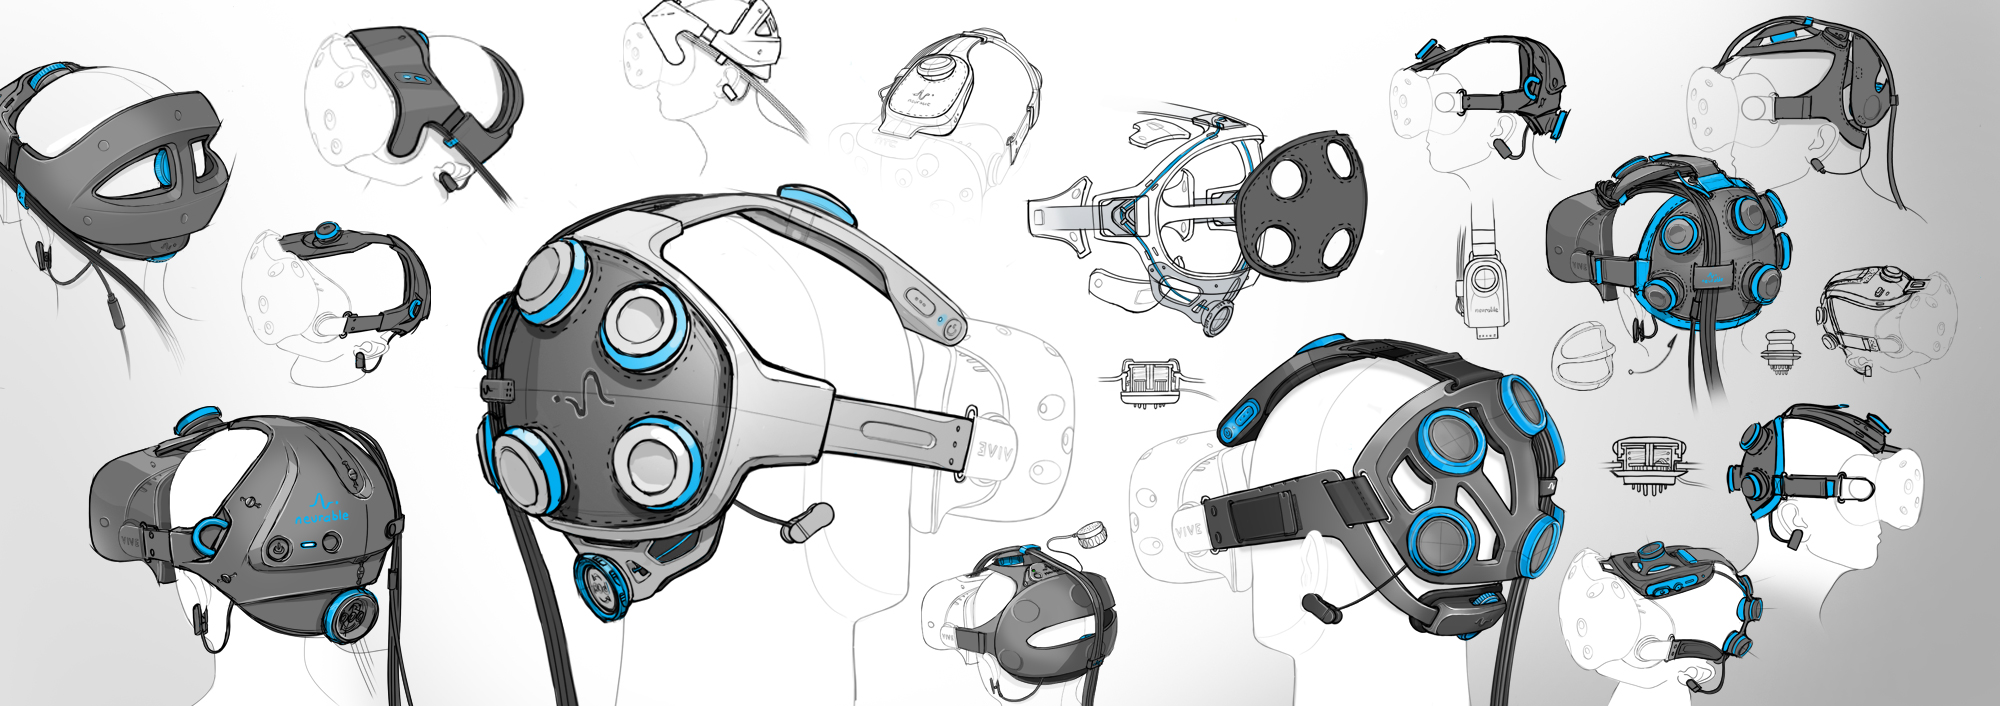 Neurable_headset_02b